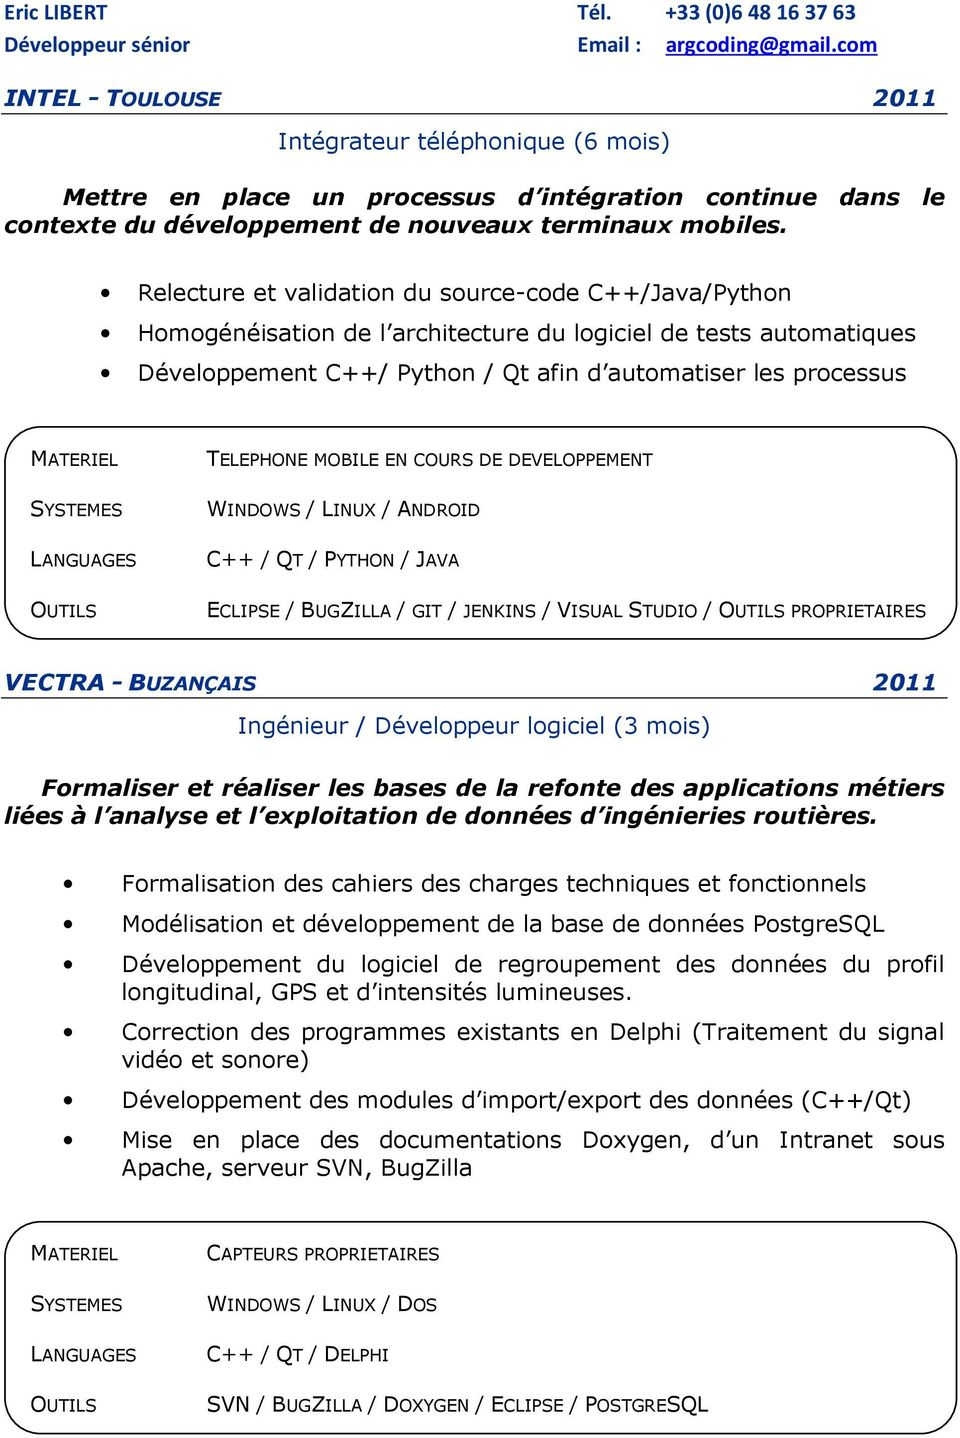 TELEPHONE MOBILE EN COURS DE DEVELOPPEMENT SYSTEMES WINDOWS / LINUX / ANDROID C++ / QT / PYTHON / JAVA ECLIPSE / BUGZILLA / GIT / JENKINS / VISUAL STUDIO / PROPRIETAIRES VECTRA - BUZANÇAIS 2011